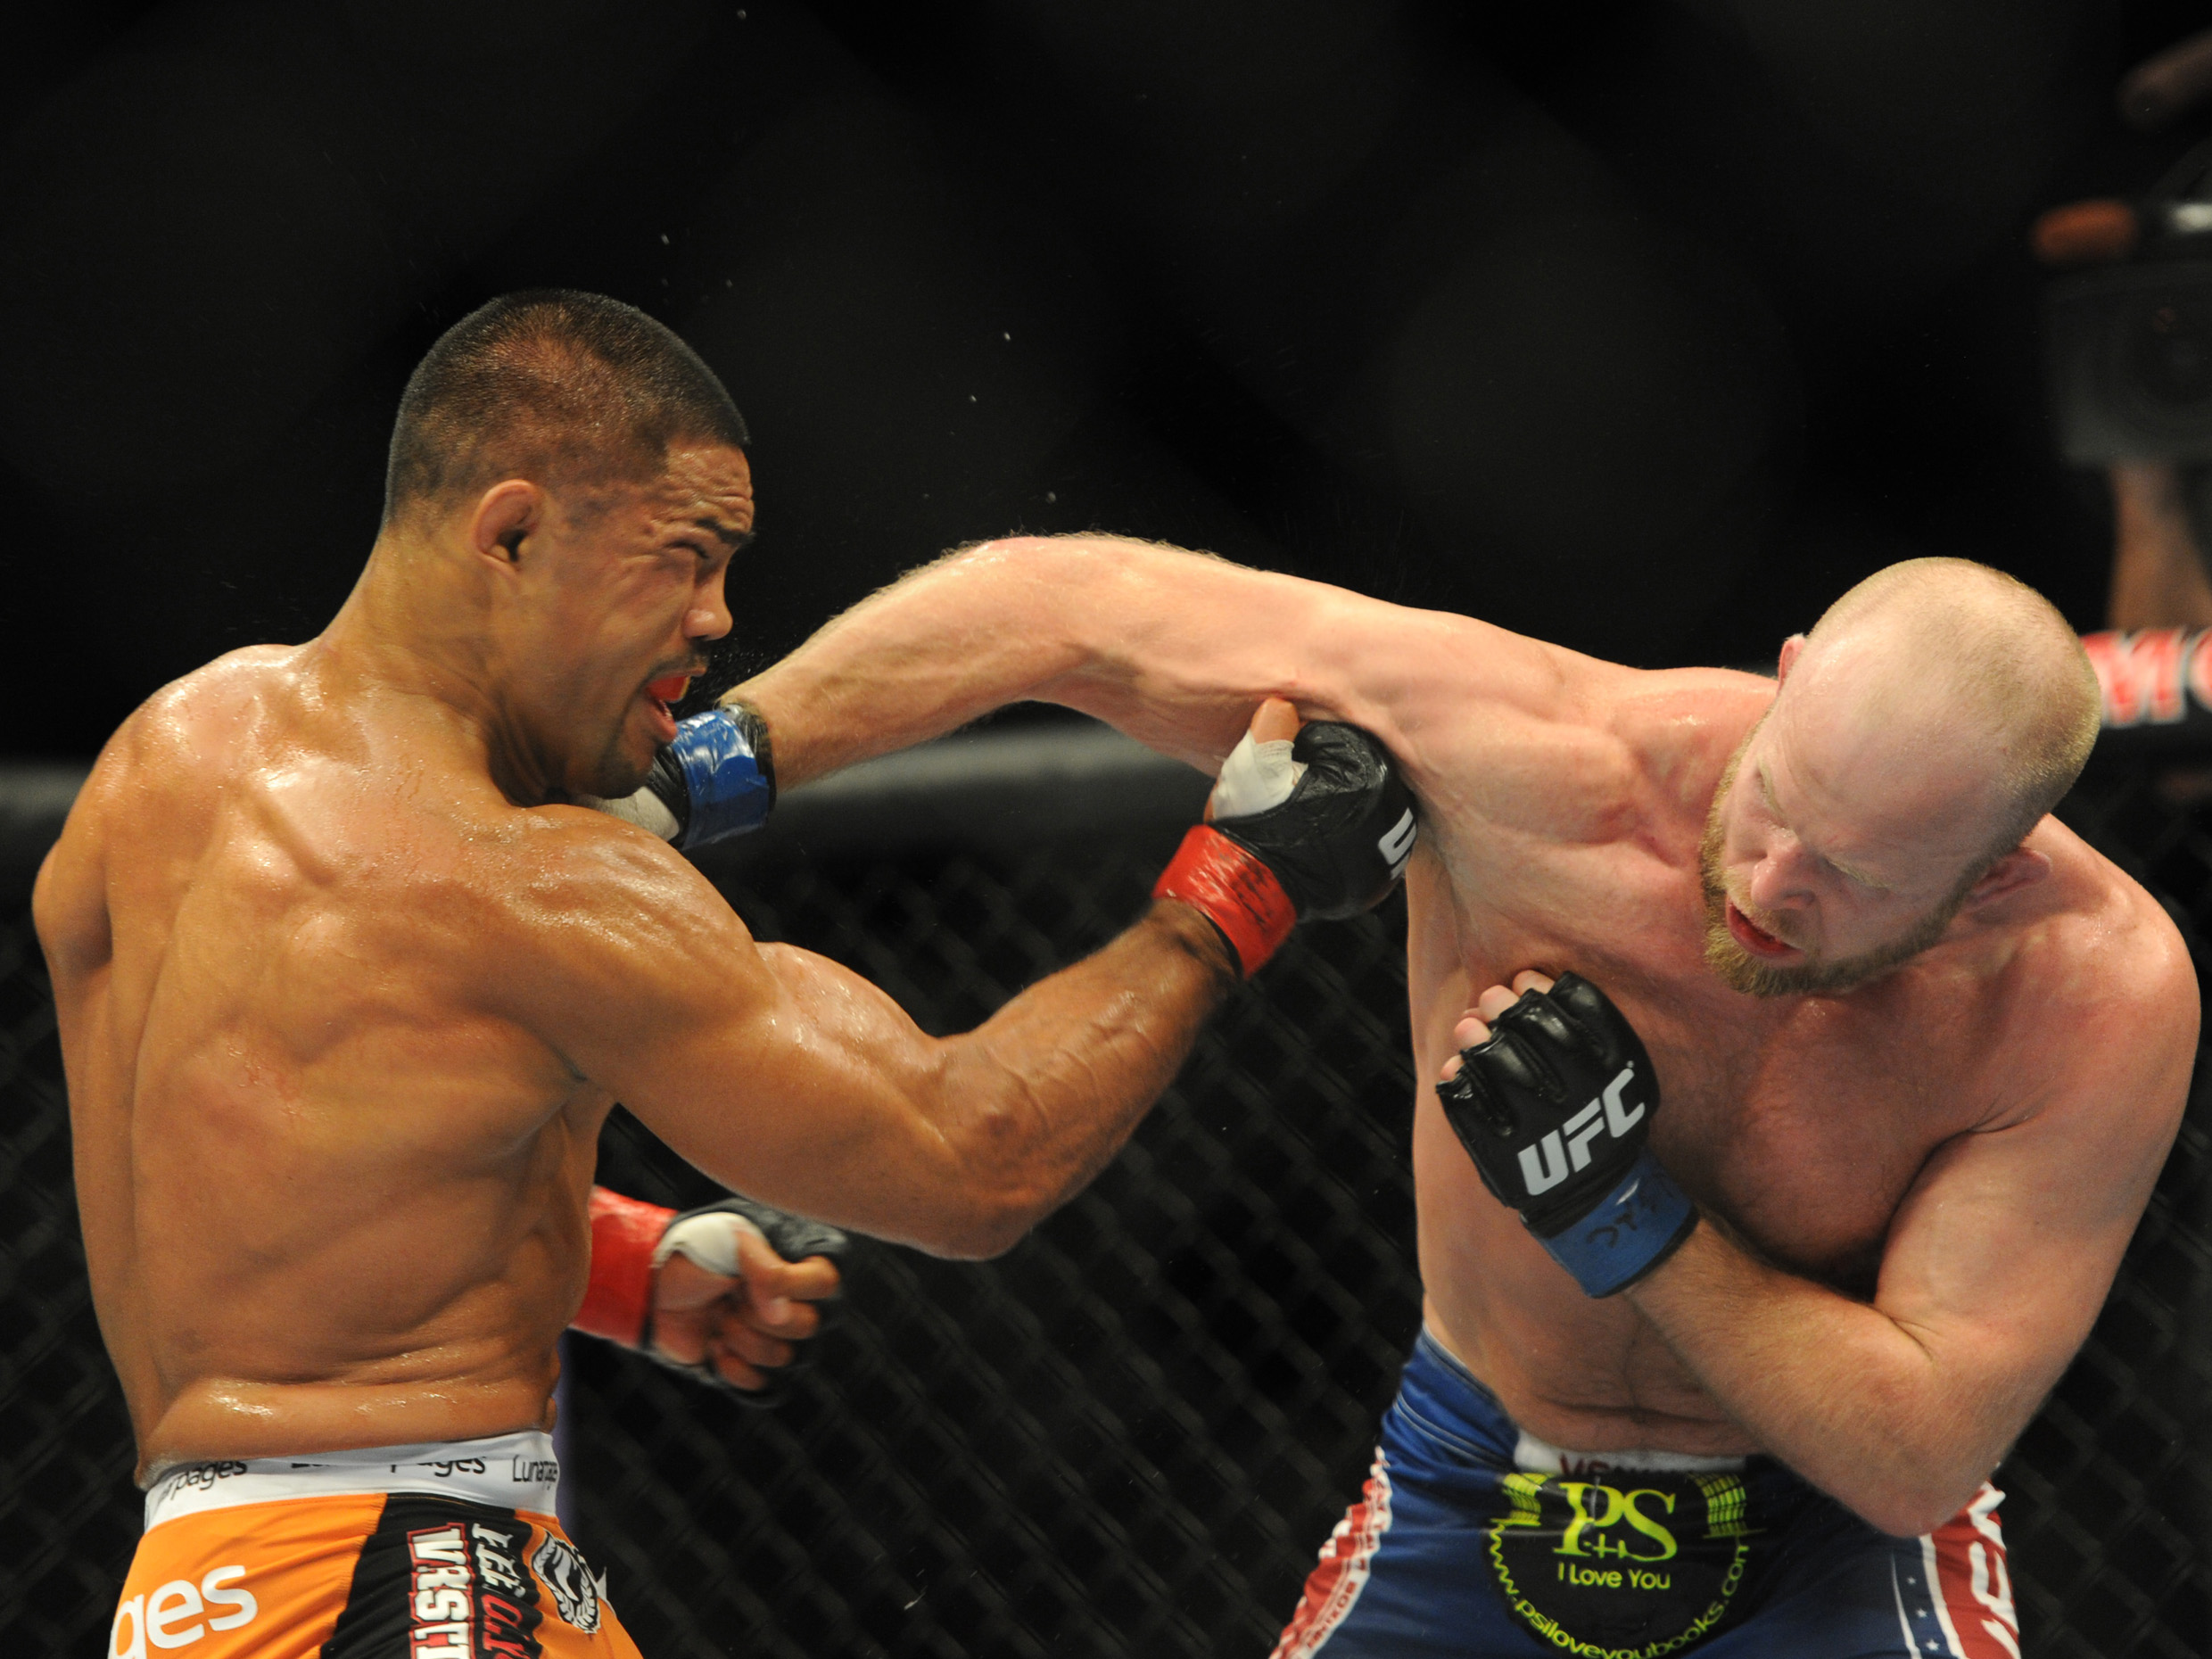 Mark Munoz and Tim Boetsch trade blows during their fight. (USA Today)